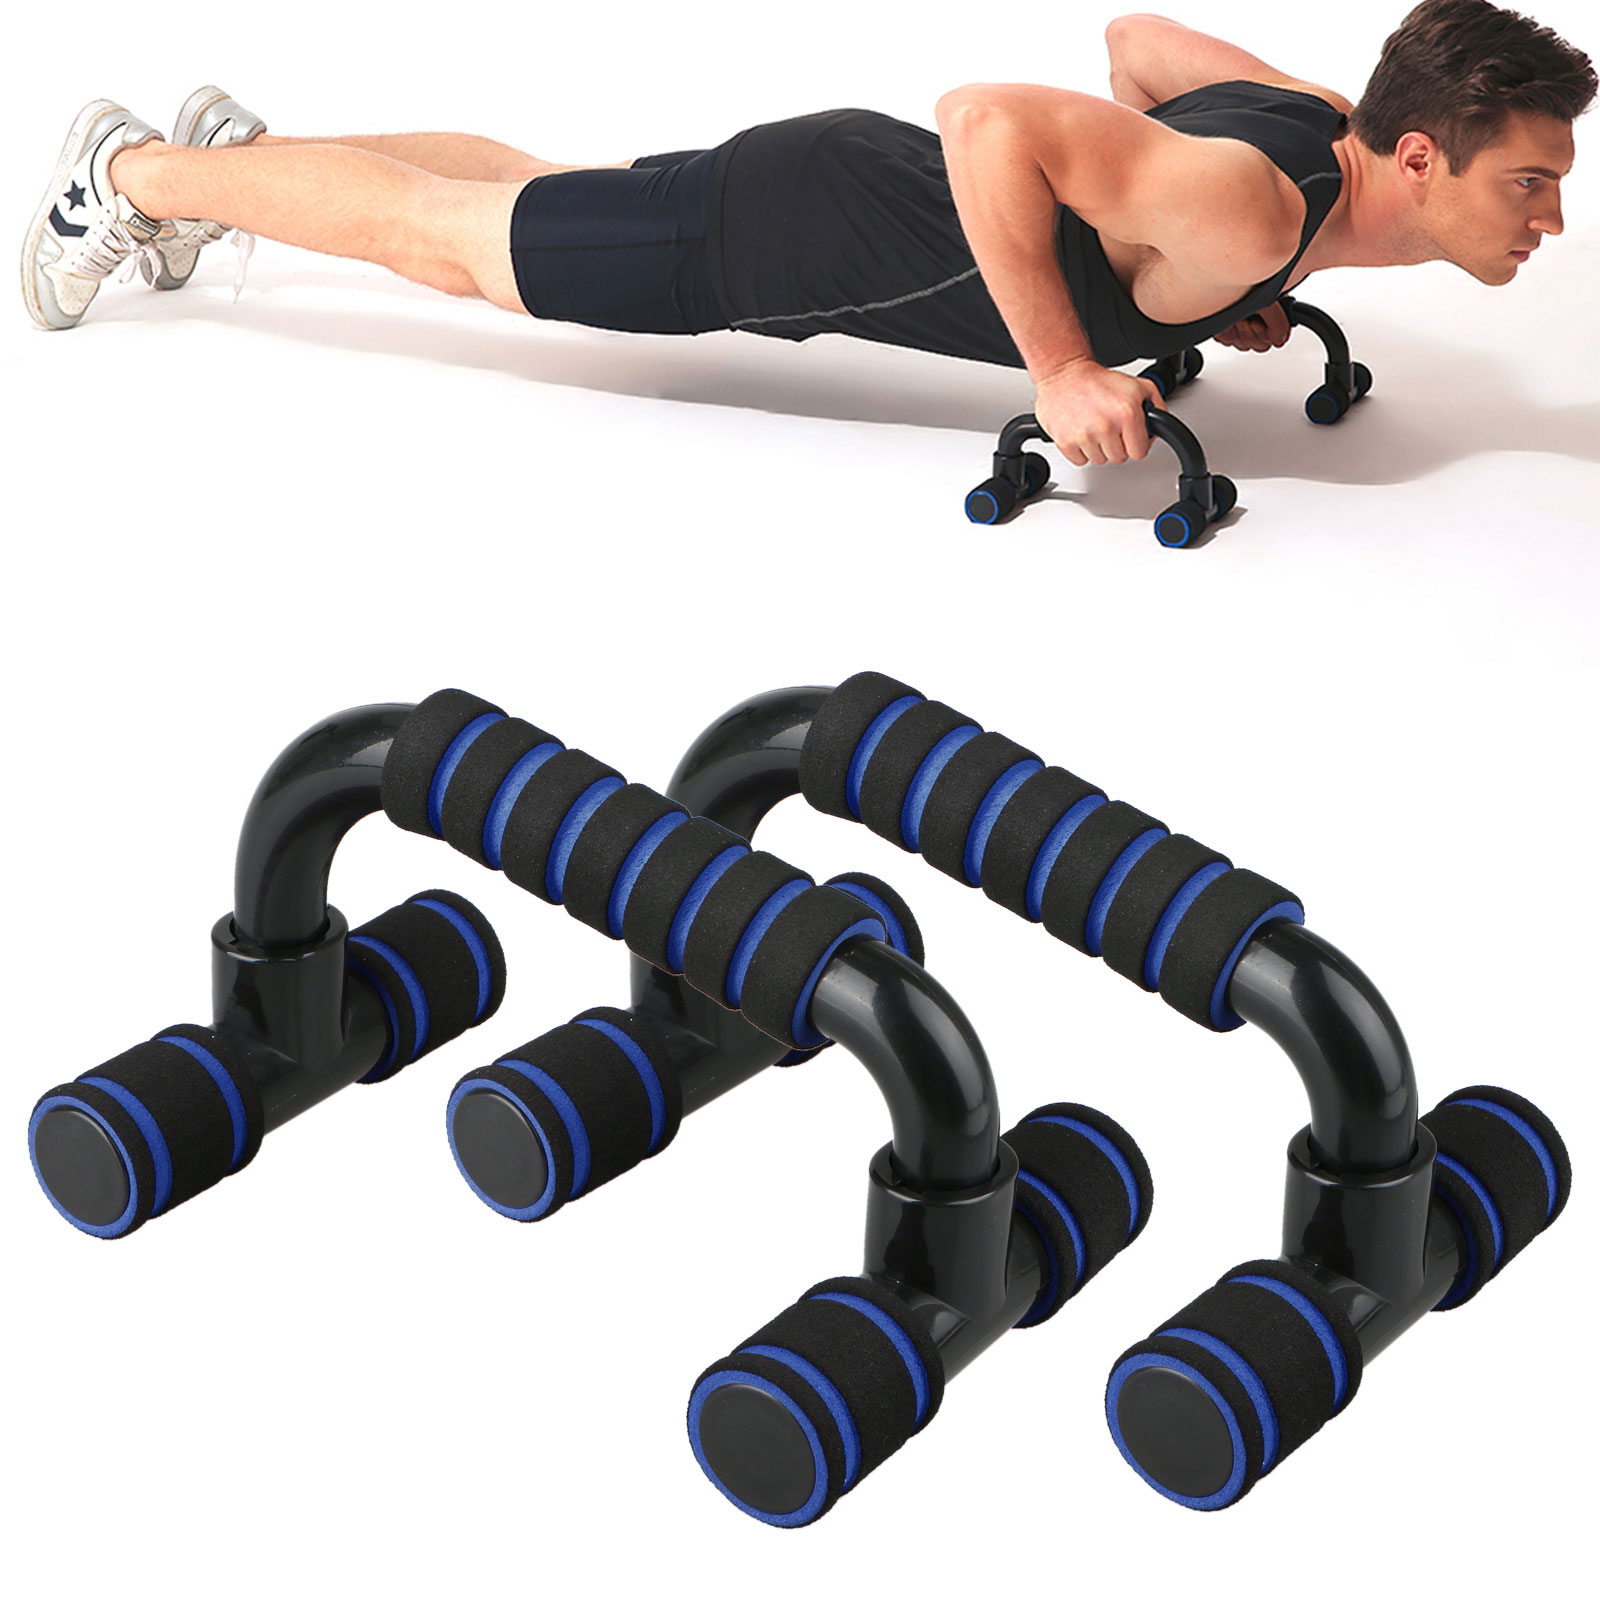 New Push Up Bars Stands Exercise Chest Fitness Home Health Workout Gym Training